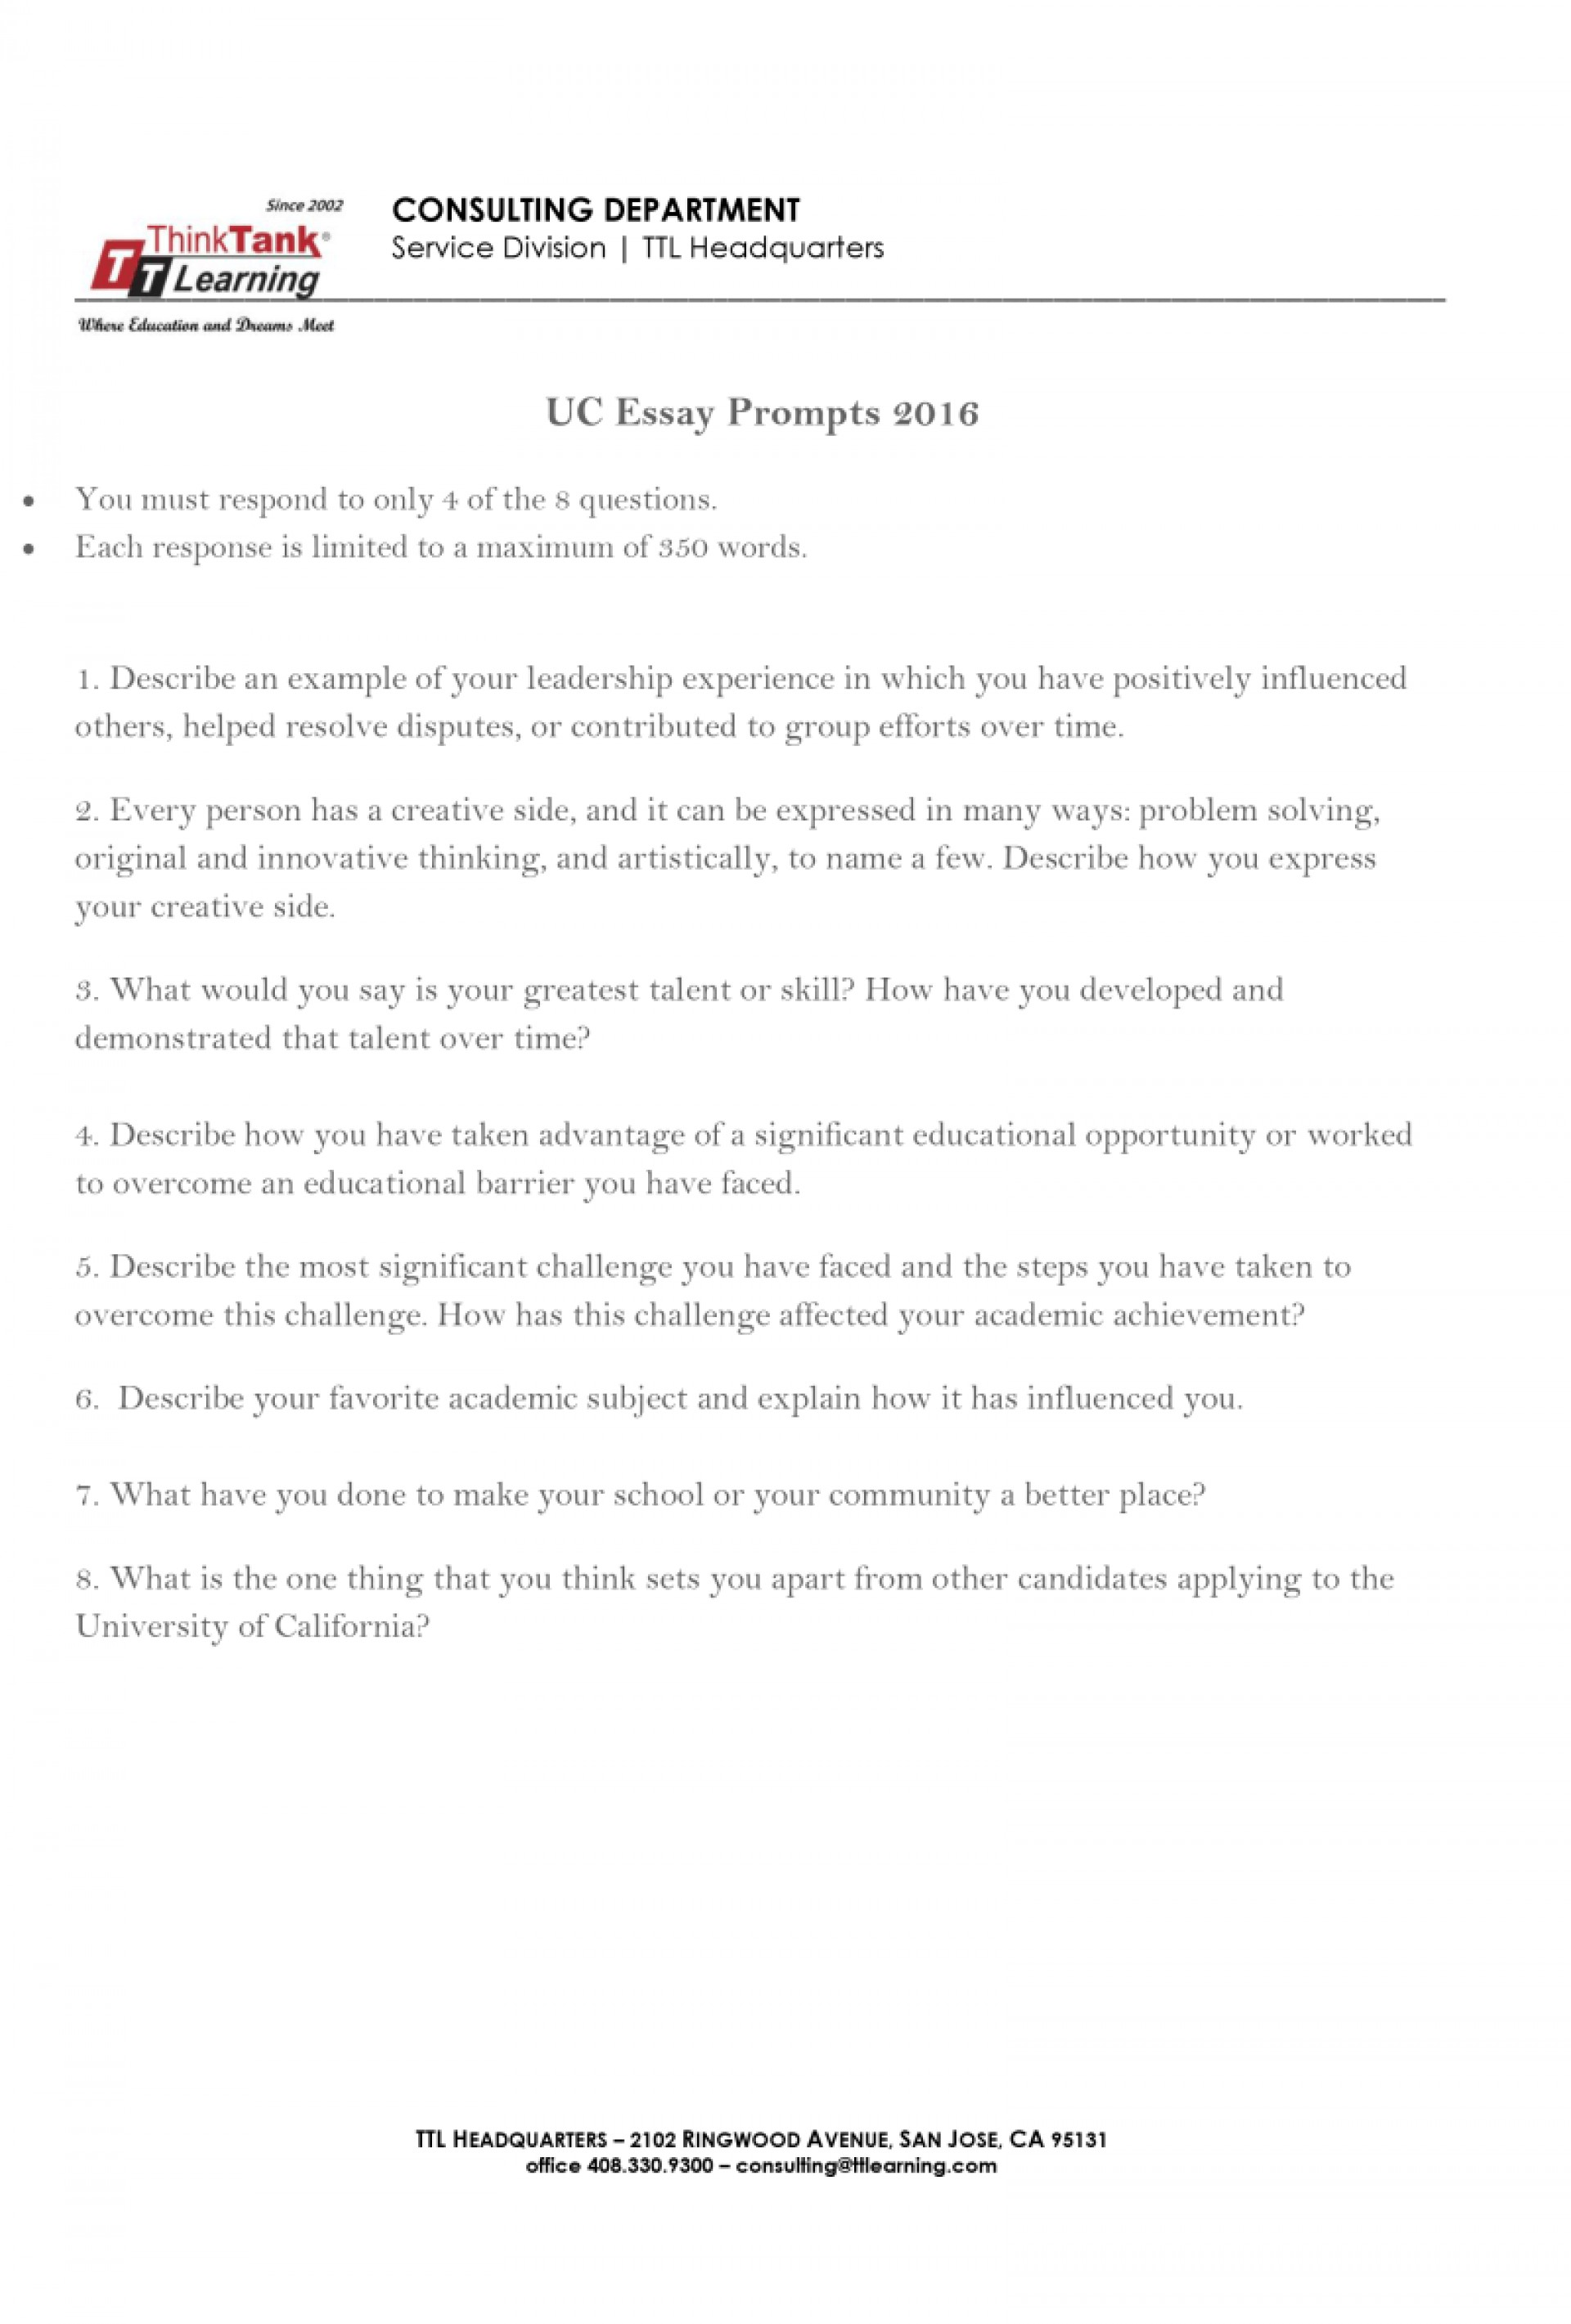 018 Apply Texas Essay Examples Example Prompts Poemsrom Co Uc College App 2 Application Berkeley Unusual C 2017 Topic A 2018 1920